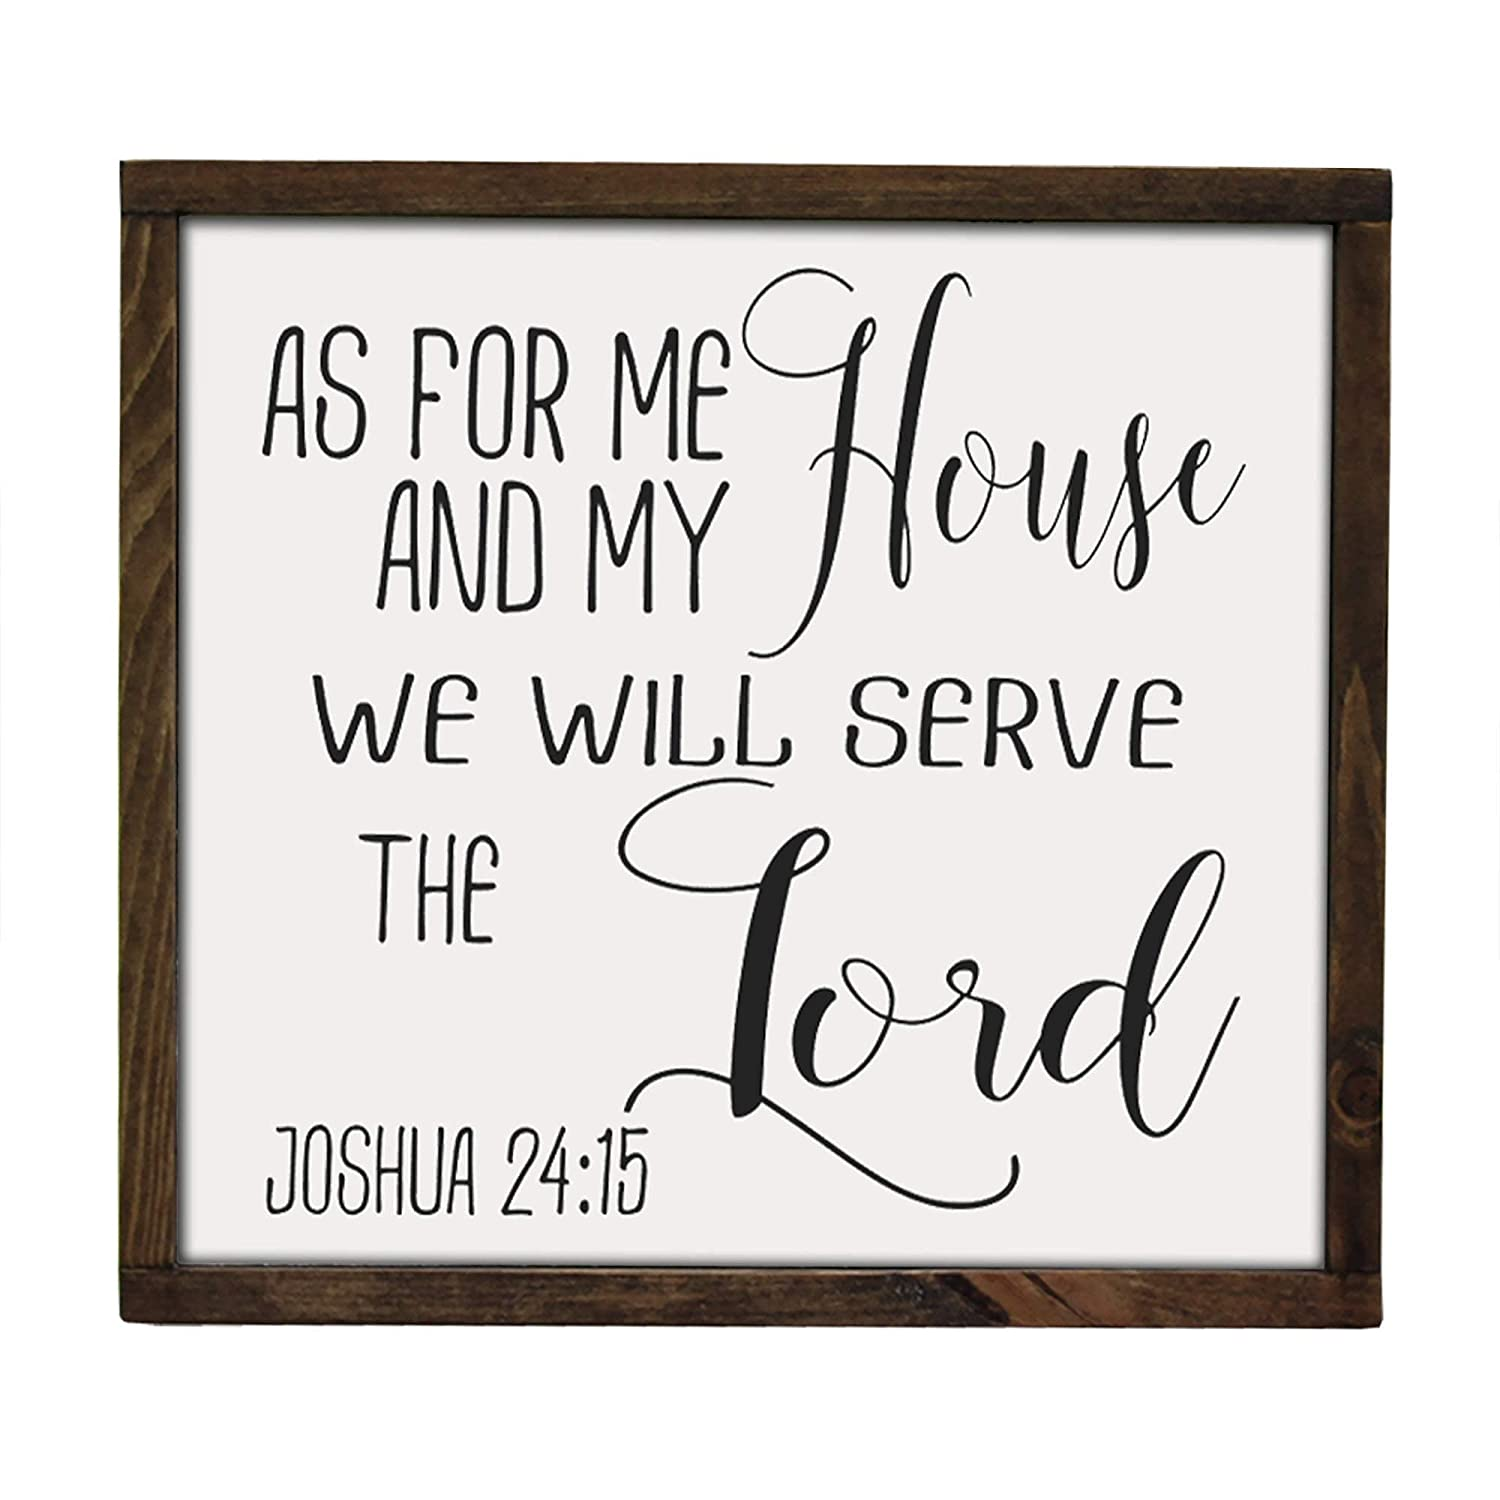 As For Me and My House We Will Serve the Lord Joshua 24:15 Bible Verse Farmhouse Sign Stained Wood Sign